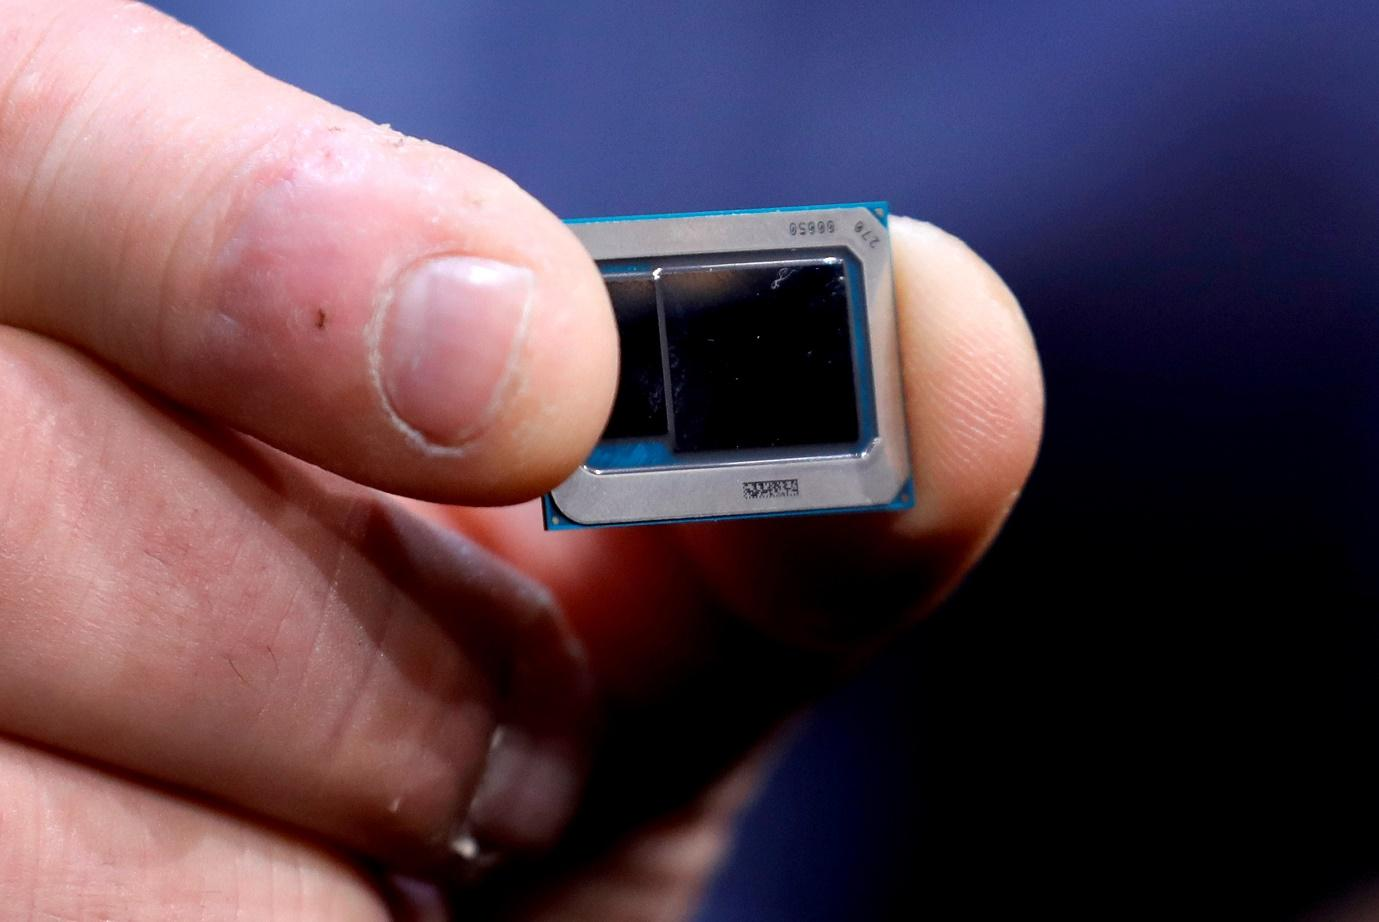 Intel reiterates chip supply shortages could last several years | Reuters